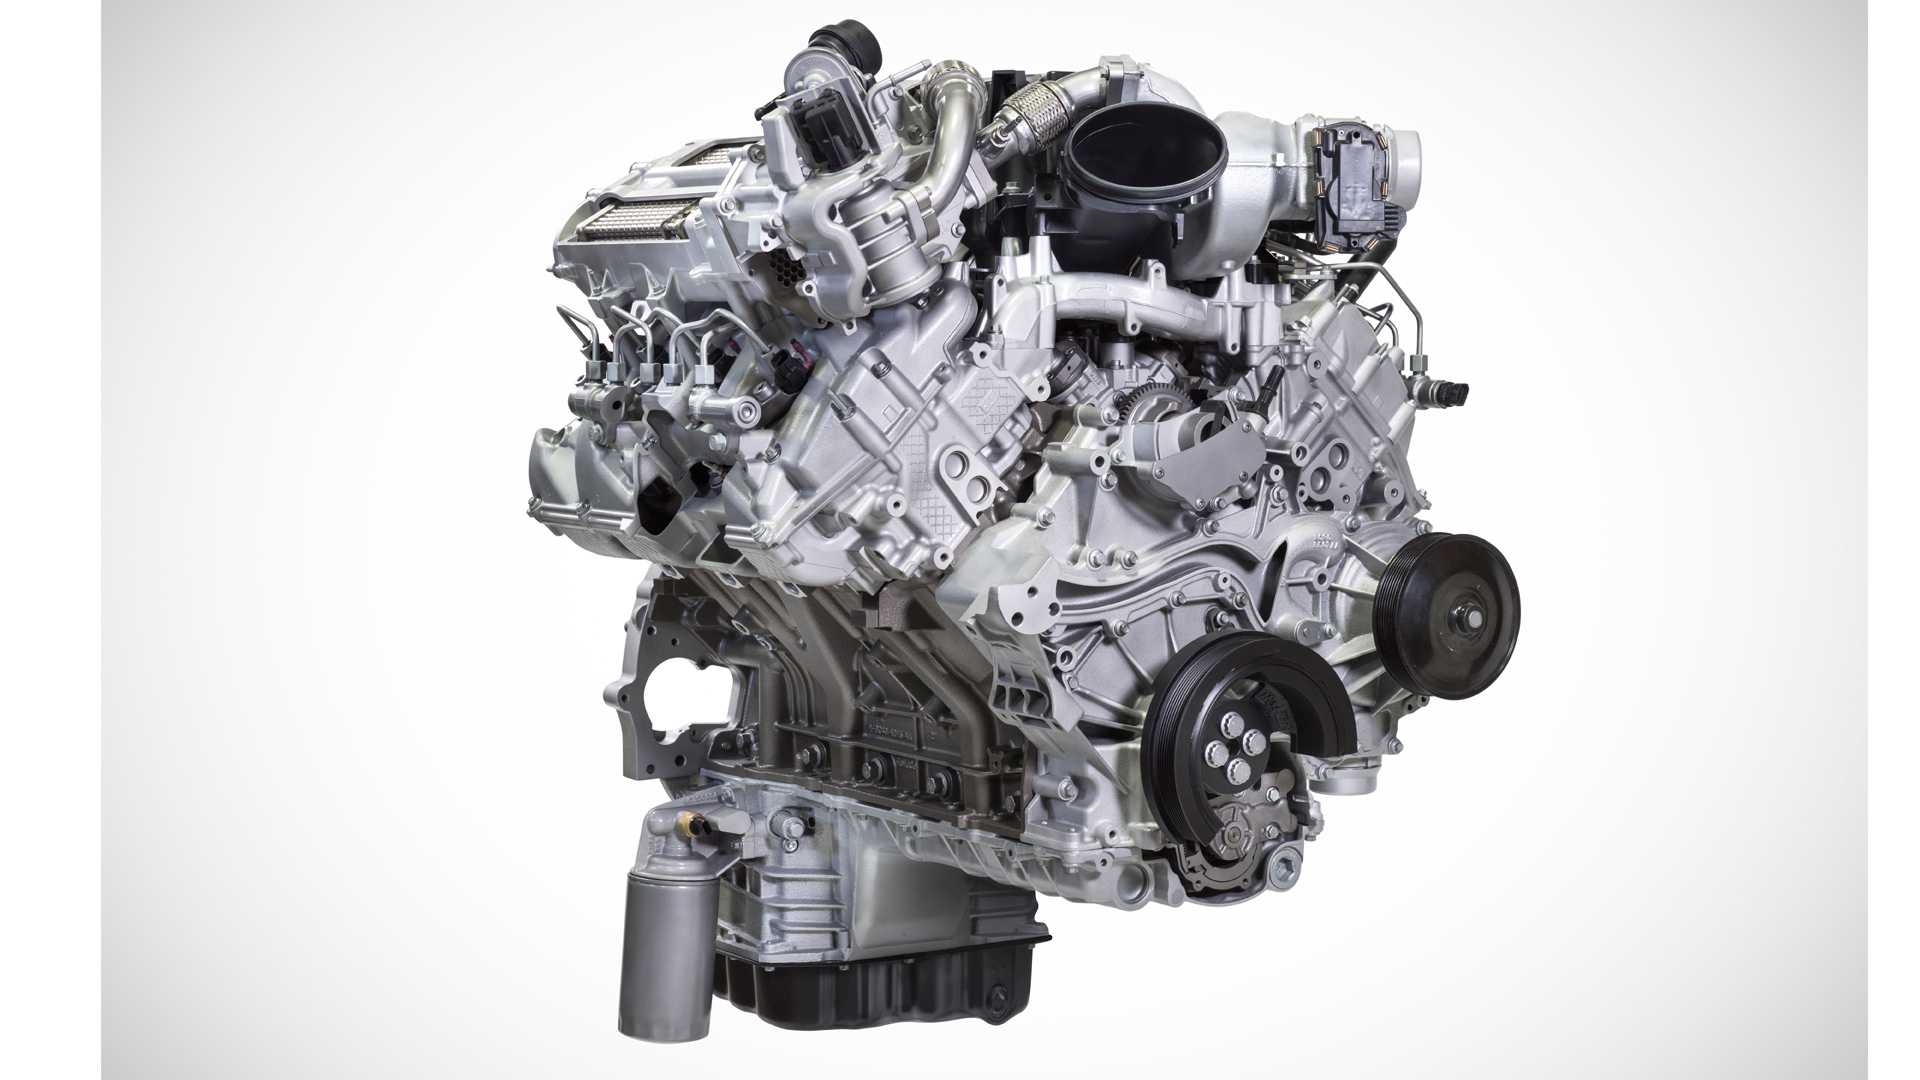 2020-ford-super-duty-powerstroke-diesel